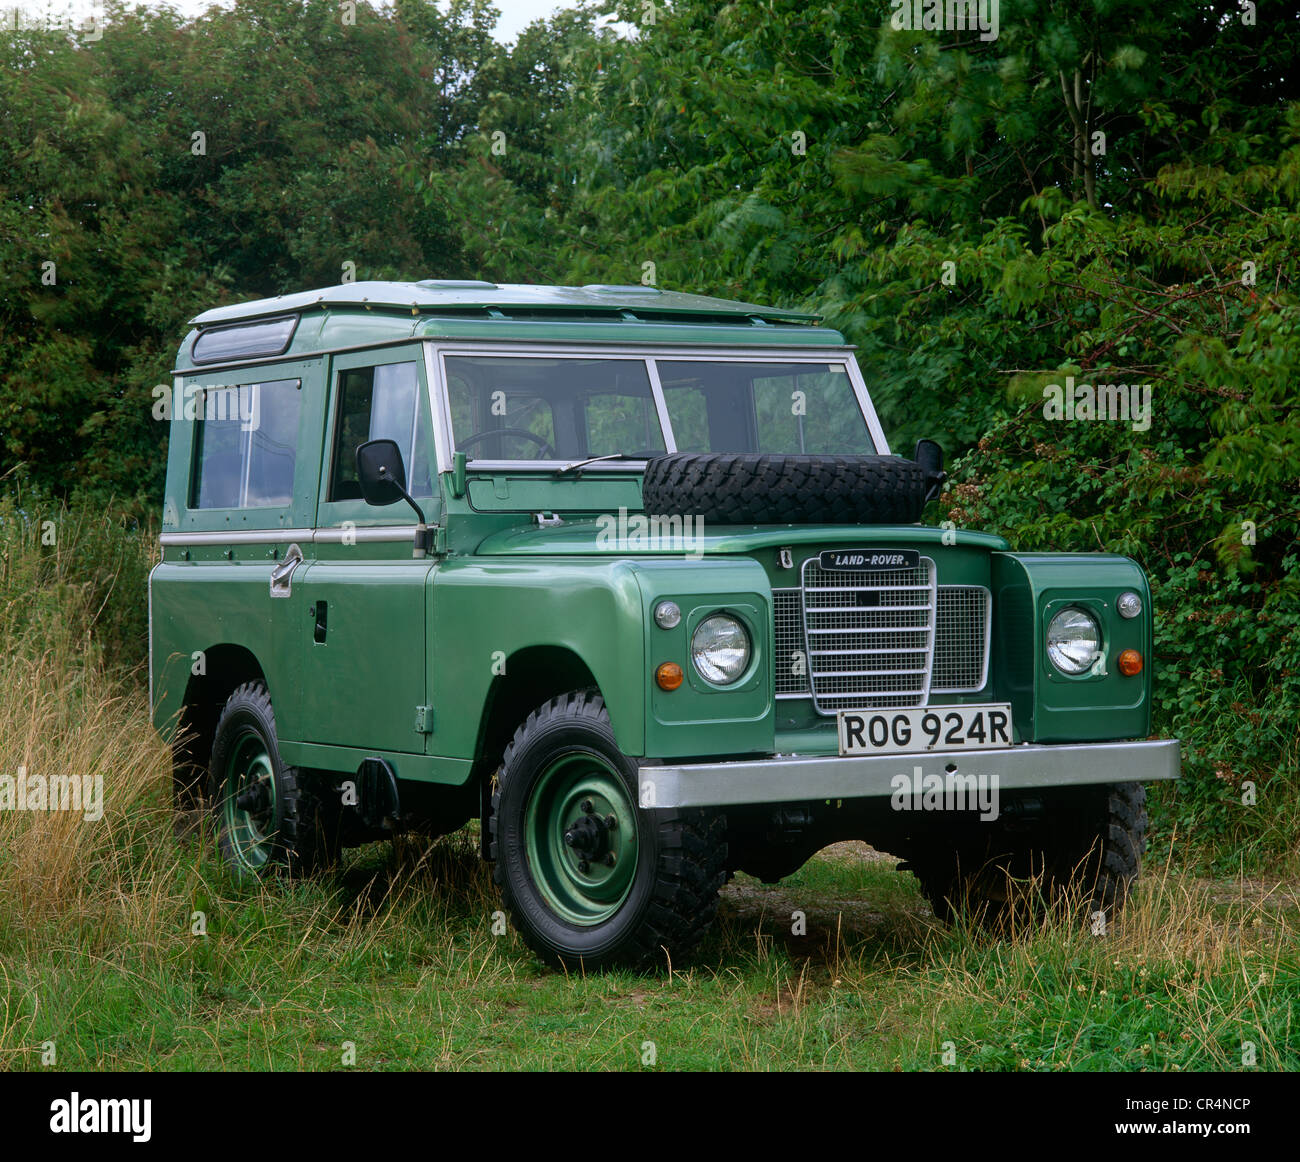 Wallpaper Old Land Rovers: Classic Land Rover Stock Photos & Classic Land Rover Stock